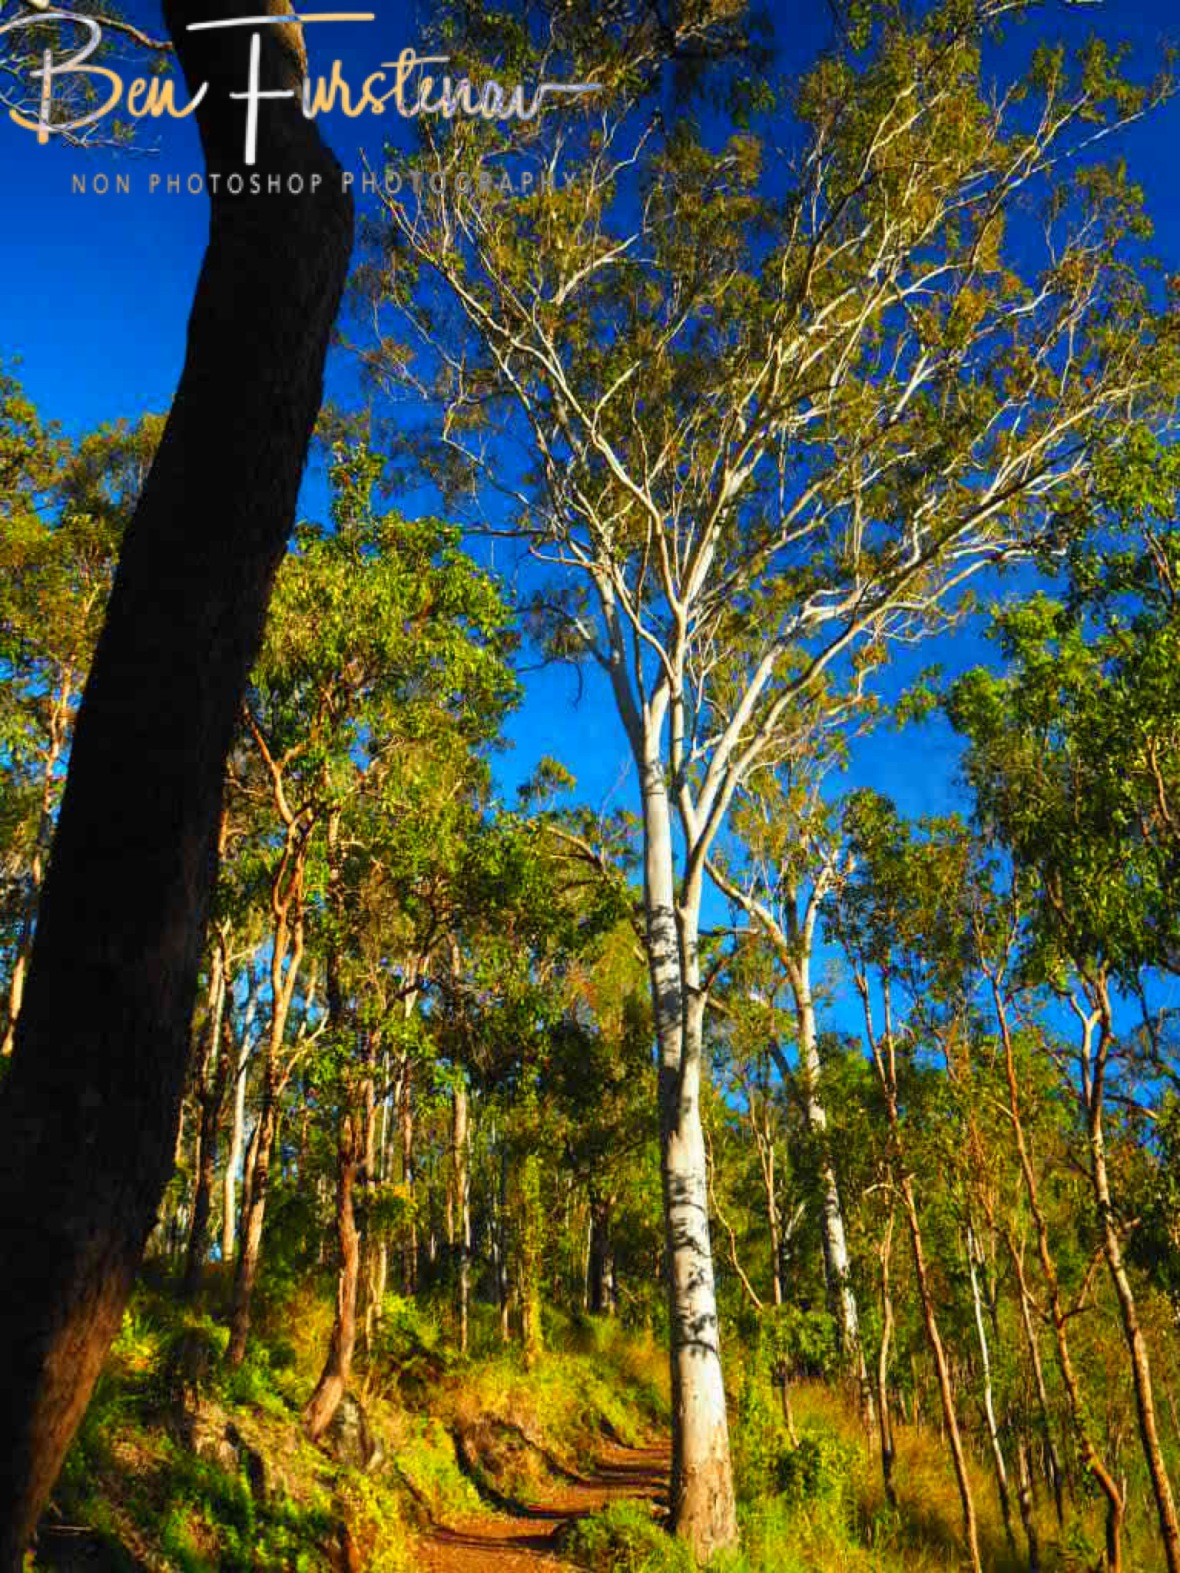 Eucalyptus forest on Atherton Tablelands western slopes, Far North Queensland, Australia